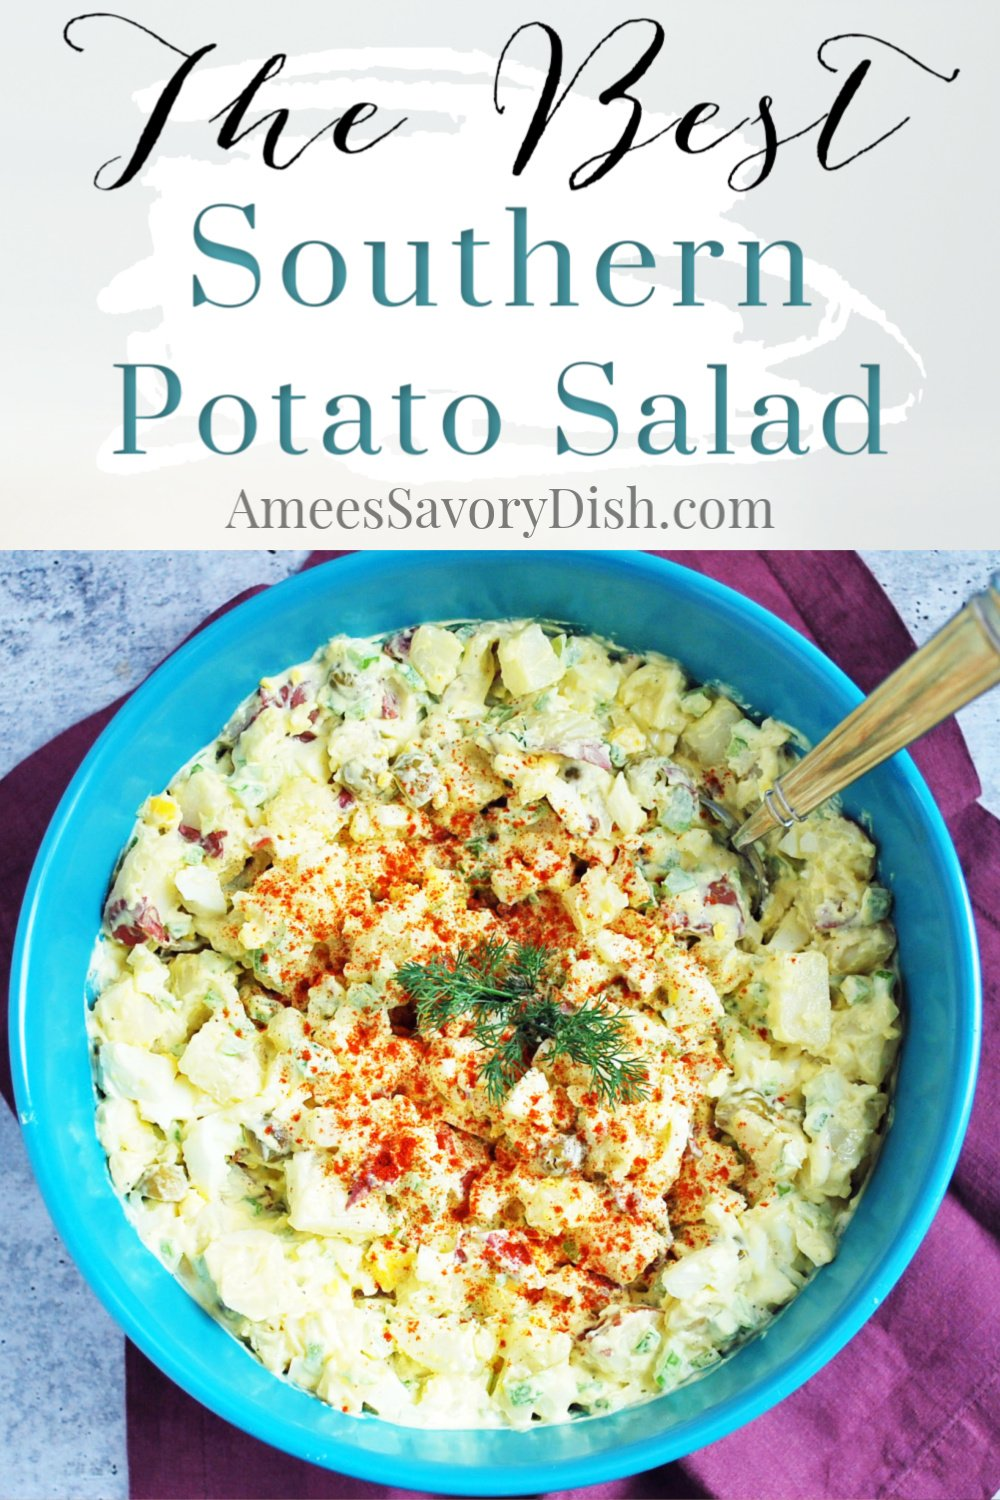 This is a family favorite recipe and hands-down, the best southern potato salad around! A special added ingredient gives it so much flavor! #southernrecipe #southernpotatosalad #potatosalad via @Ameessavorydish